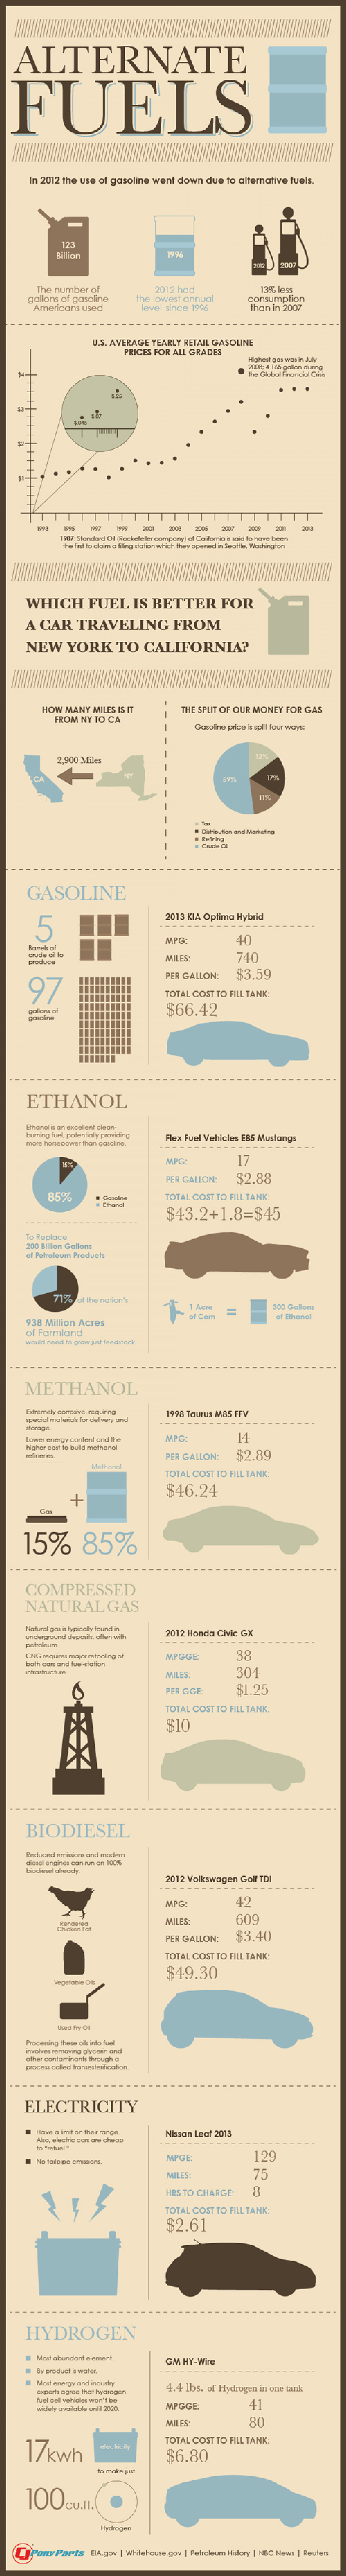 Alternate Fuels Infographic